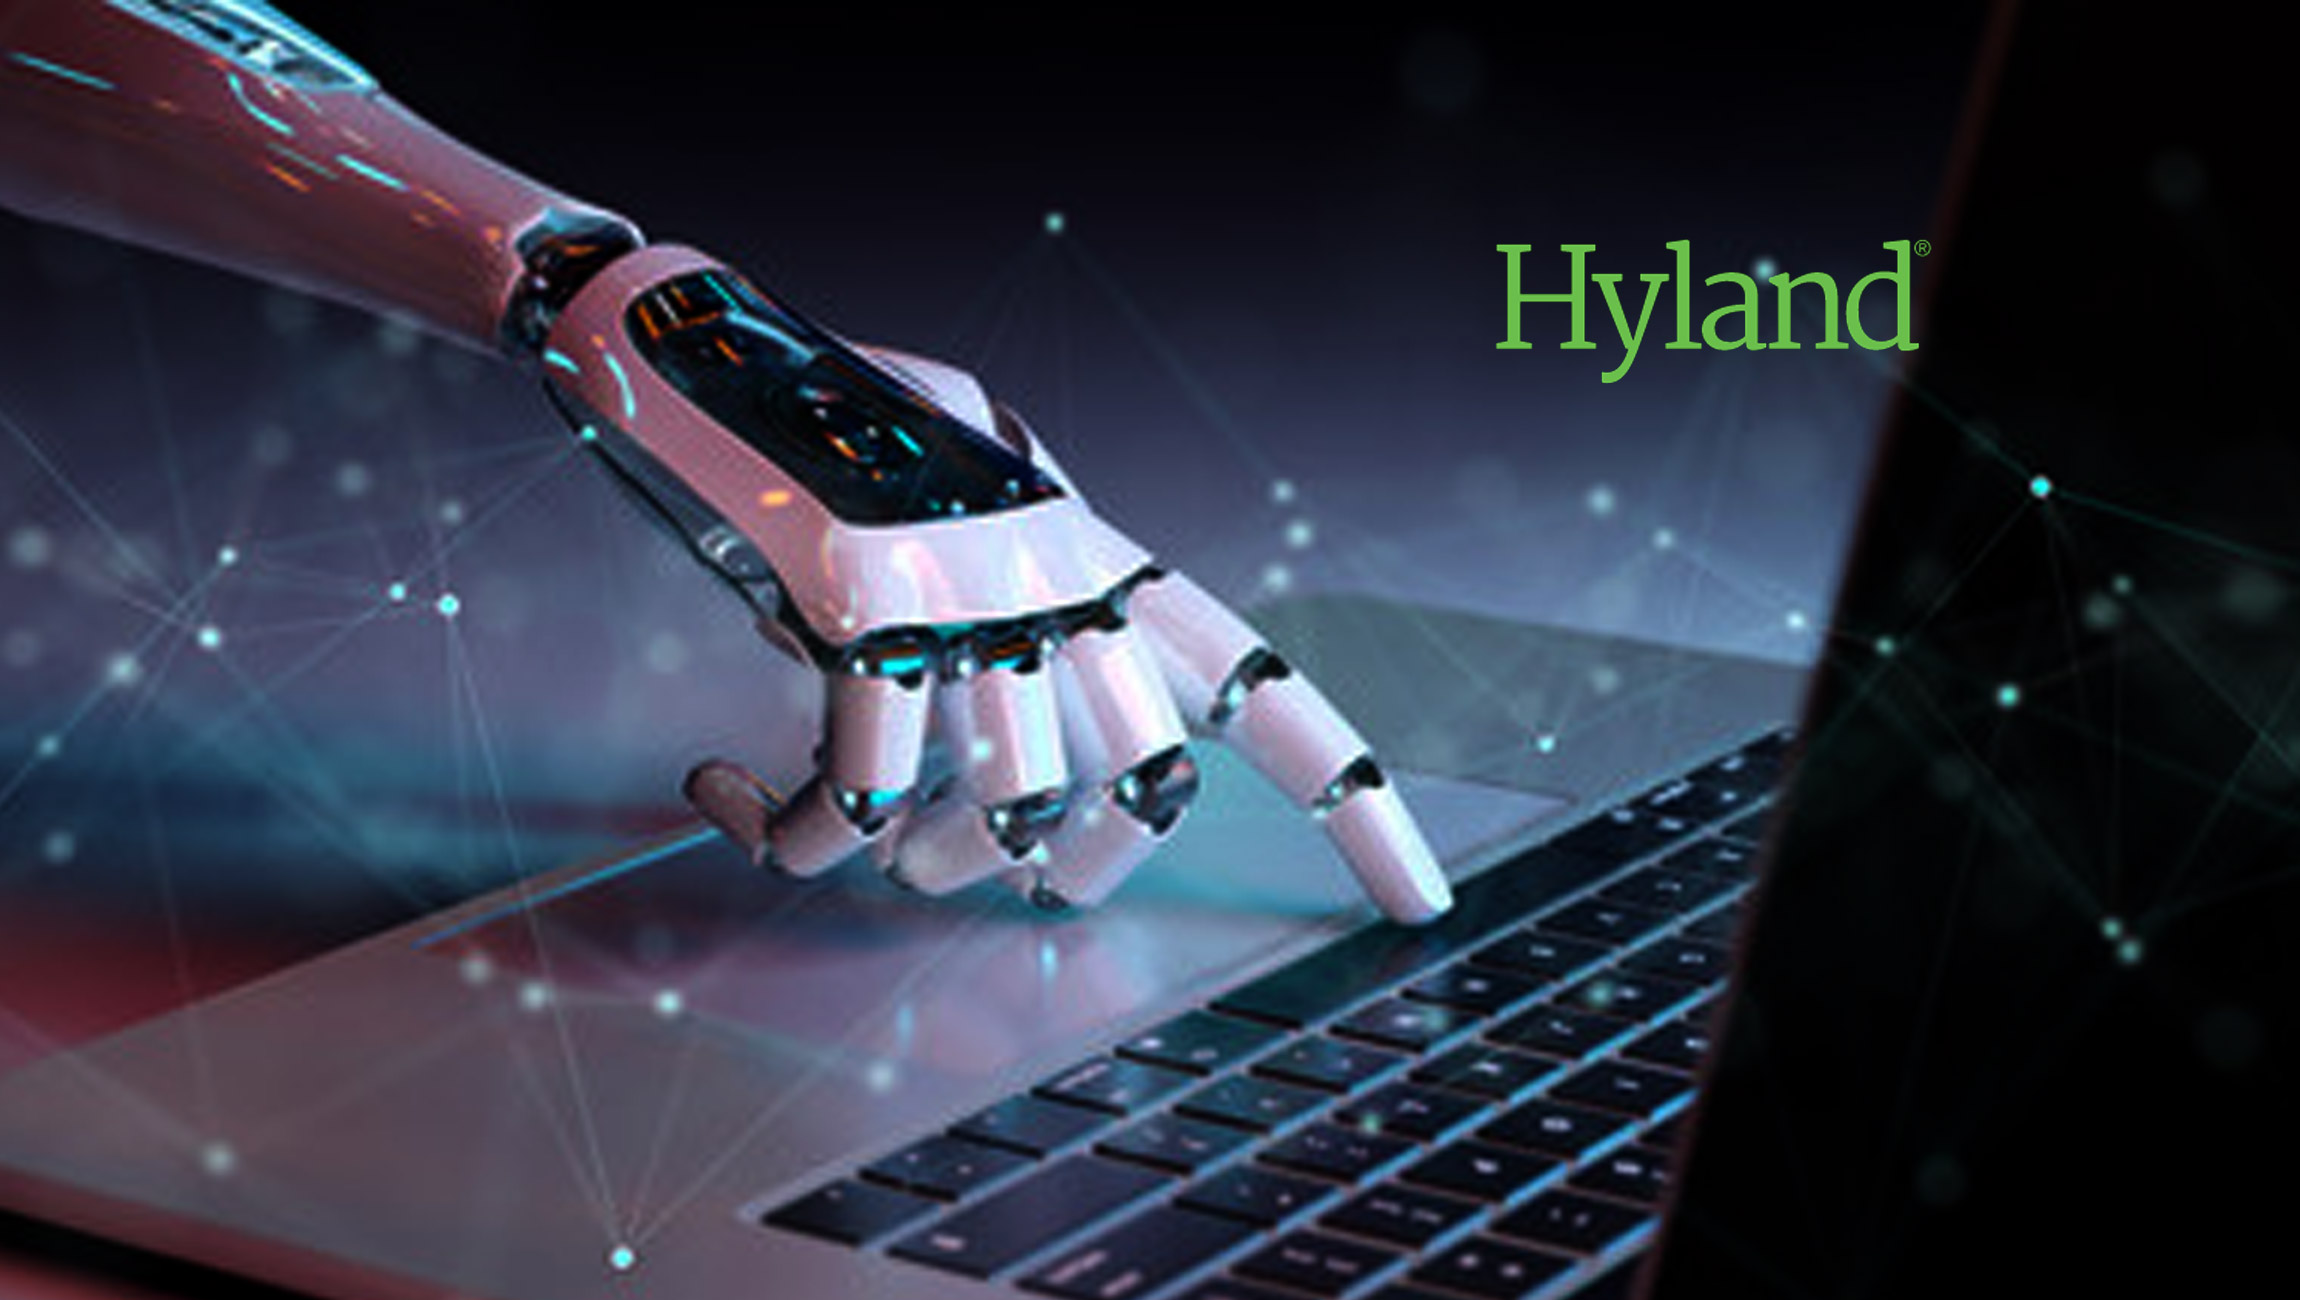 Hyland Named a Strong Performer in Robotic Process Automation (RPA) by Independent Research Firm